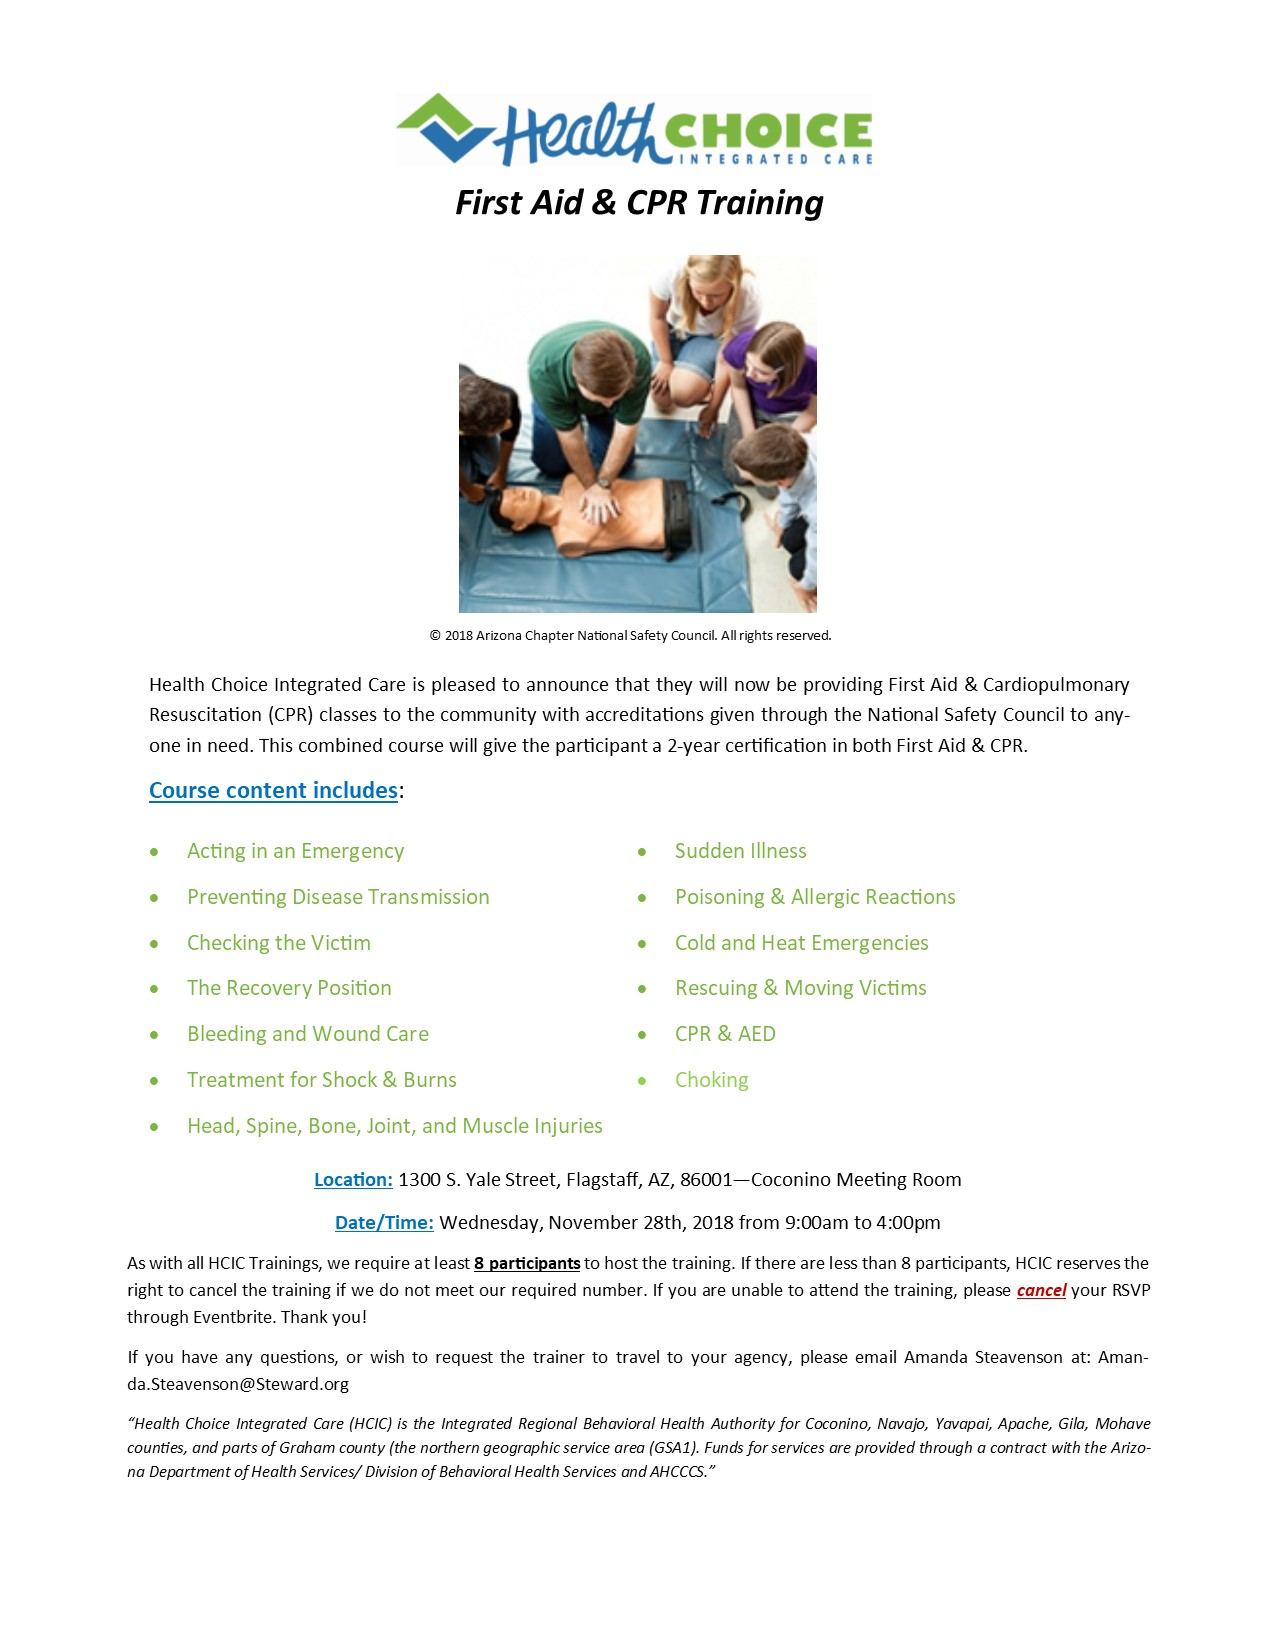 First Aid Cpr Training National Safety Council 2 Year